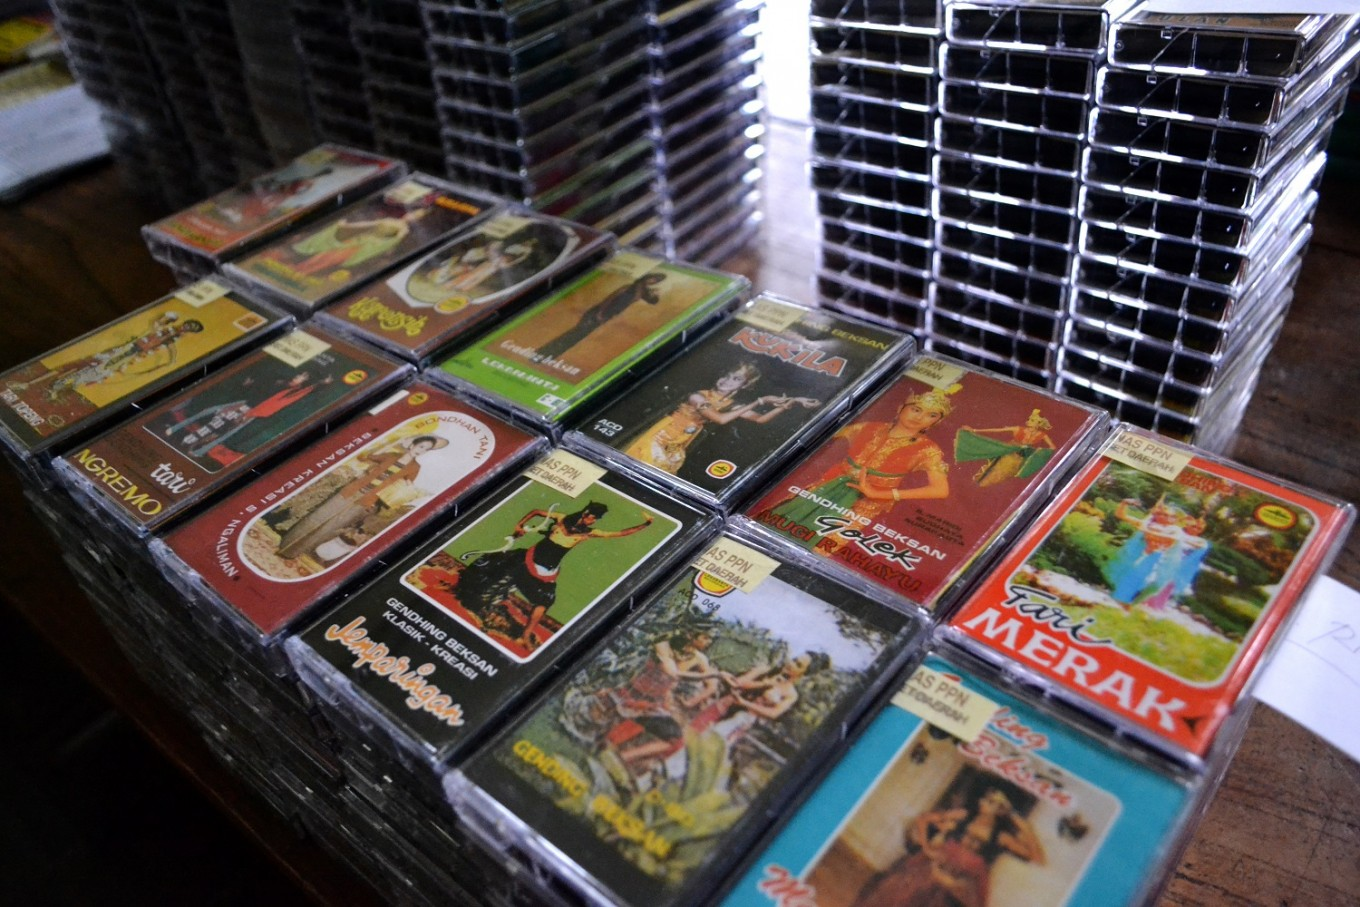 Cassette tapes feature traditional music.